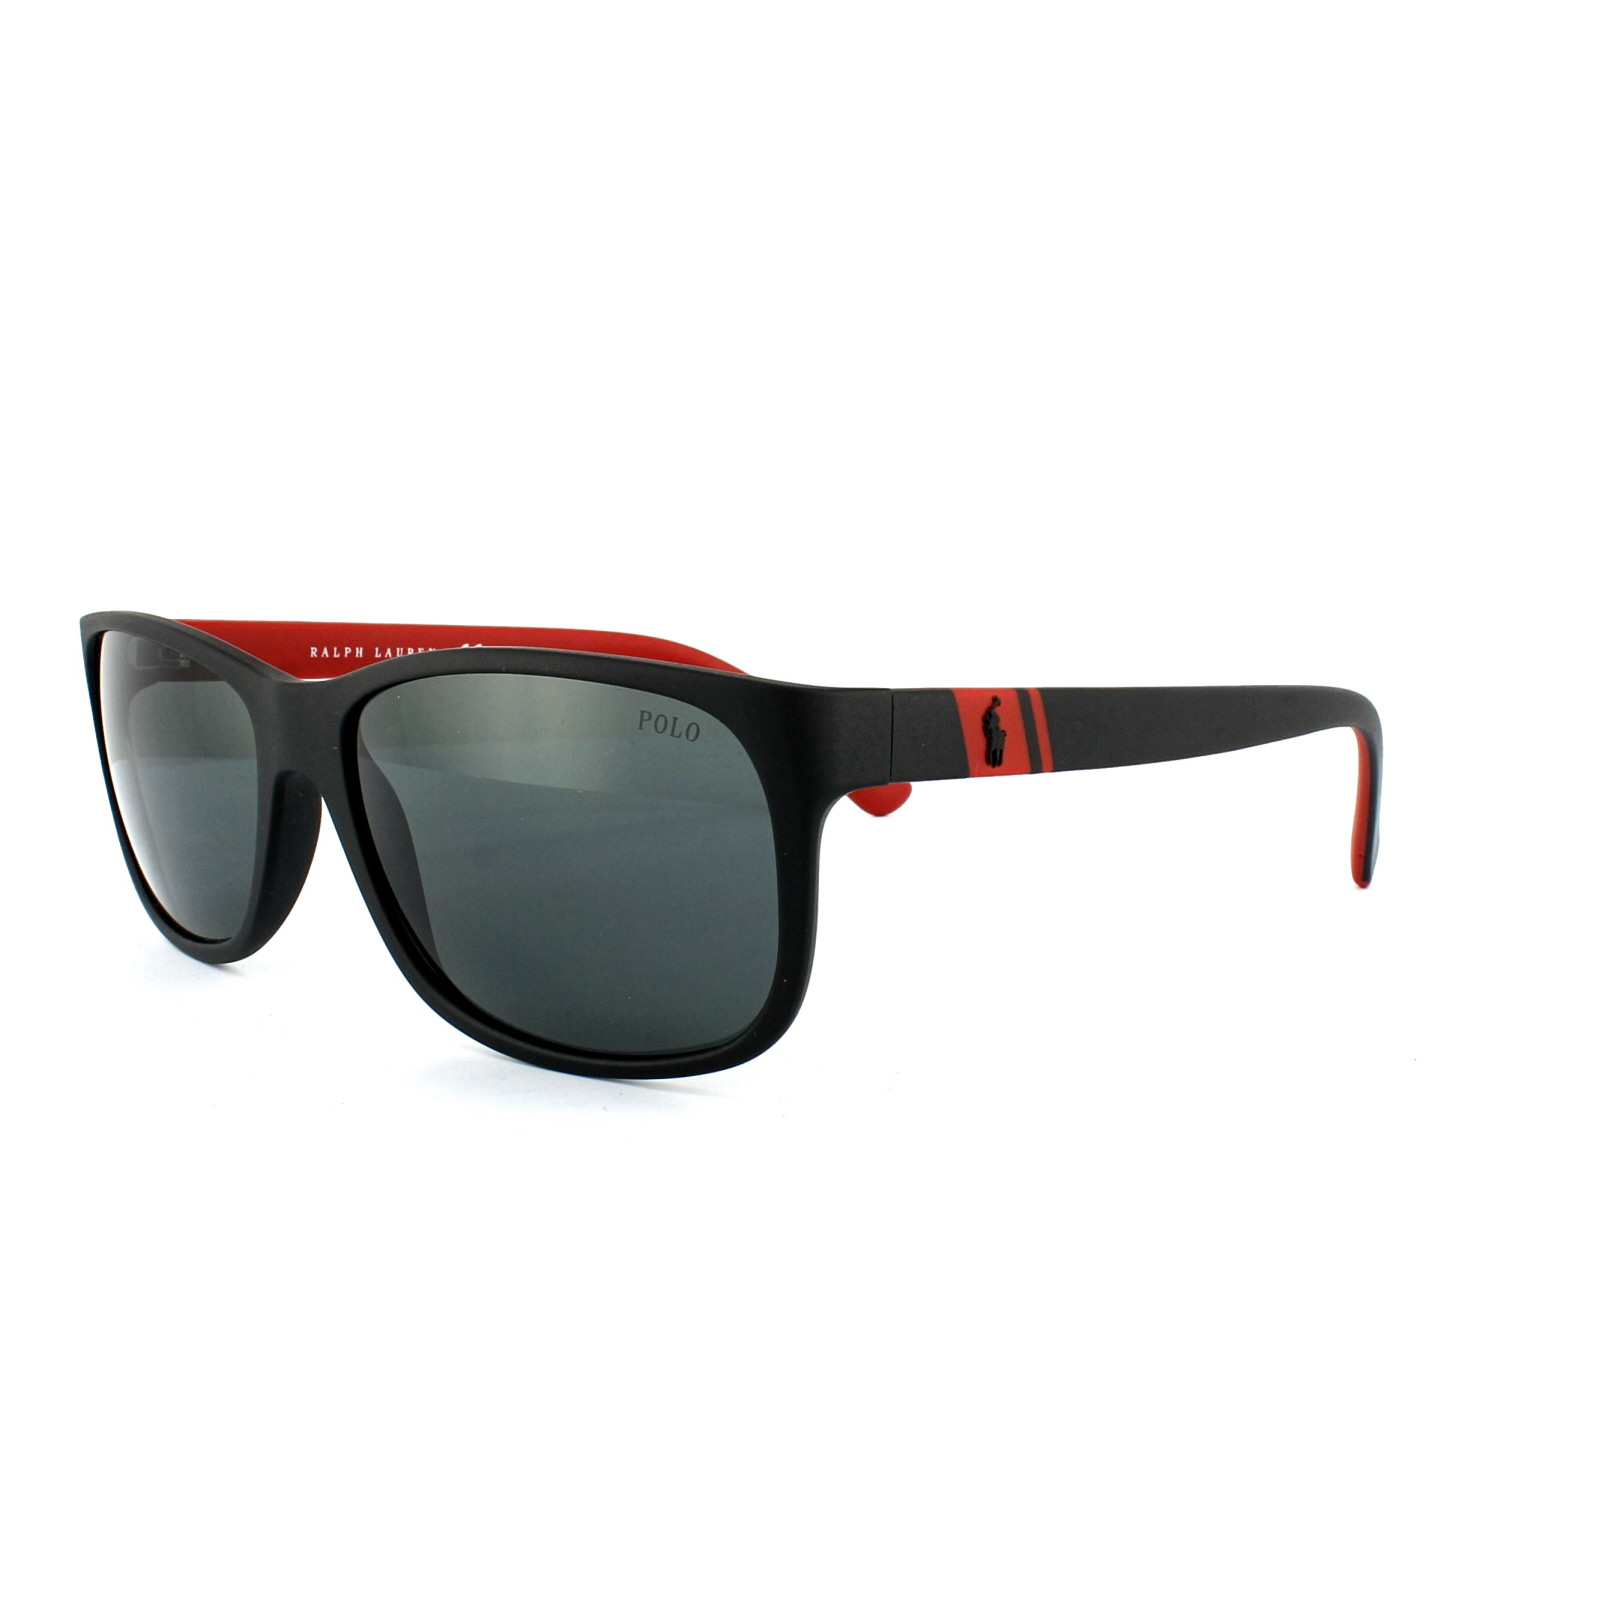 4a407c7fa974 Sentinel Polo Ralph Lauren Sunglasses 4109 524787 Matt Black Red Grey